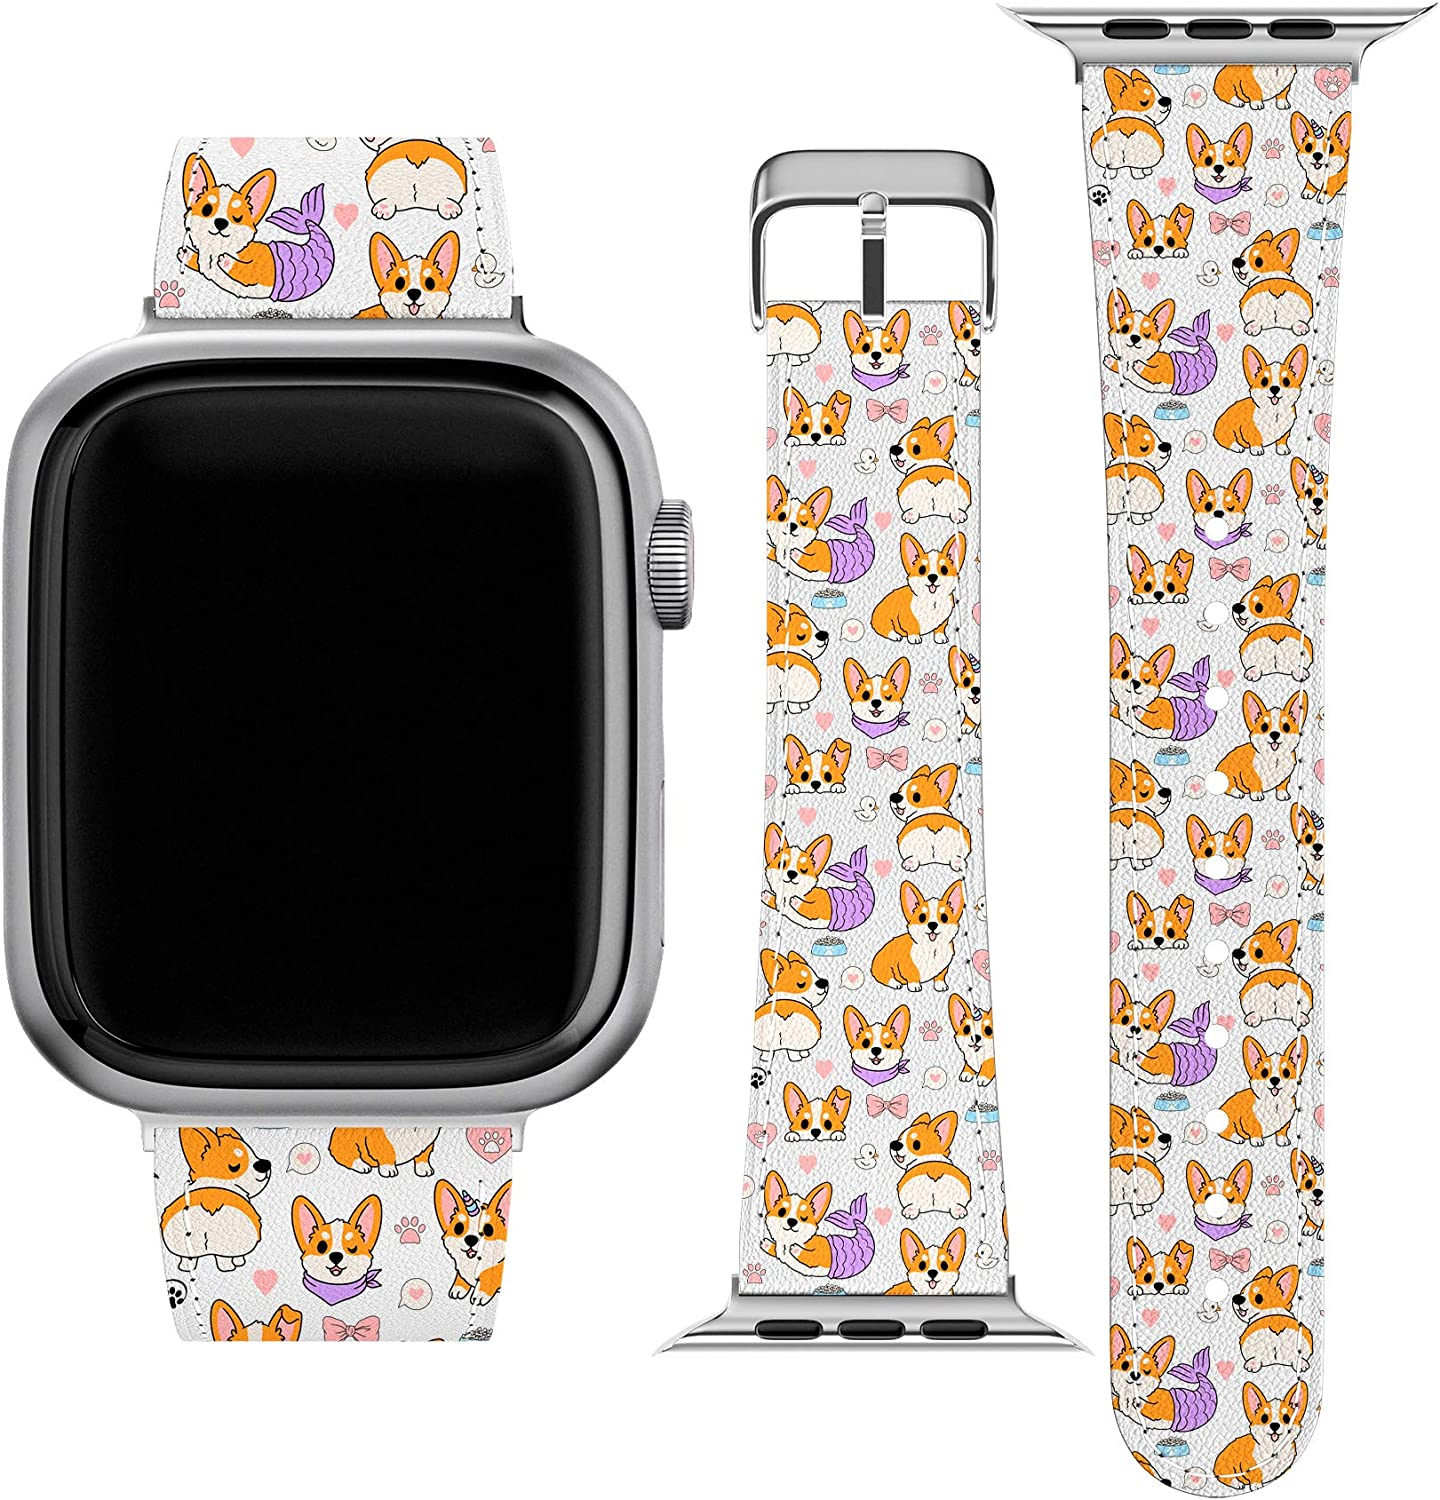 Lex Altern Band Compatible with Apple Watch Series 6 SE 5 4 3 2 1 38mm 40mm 42mm 44mm Dog Corgis Butt Puppy Stylish Mermaid Cute Corgicorn Wristband Thin PU Leather Replacement Strap for iWatch wh581